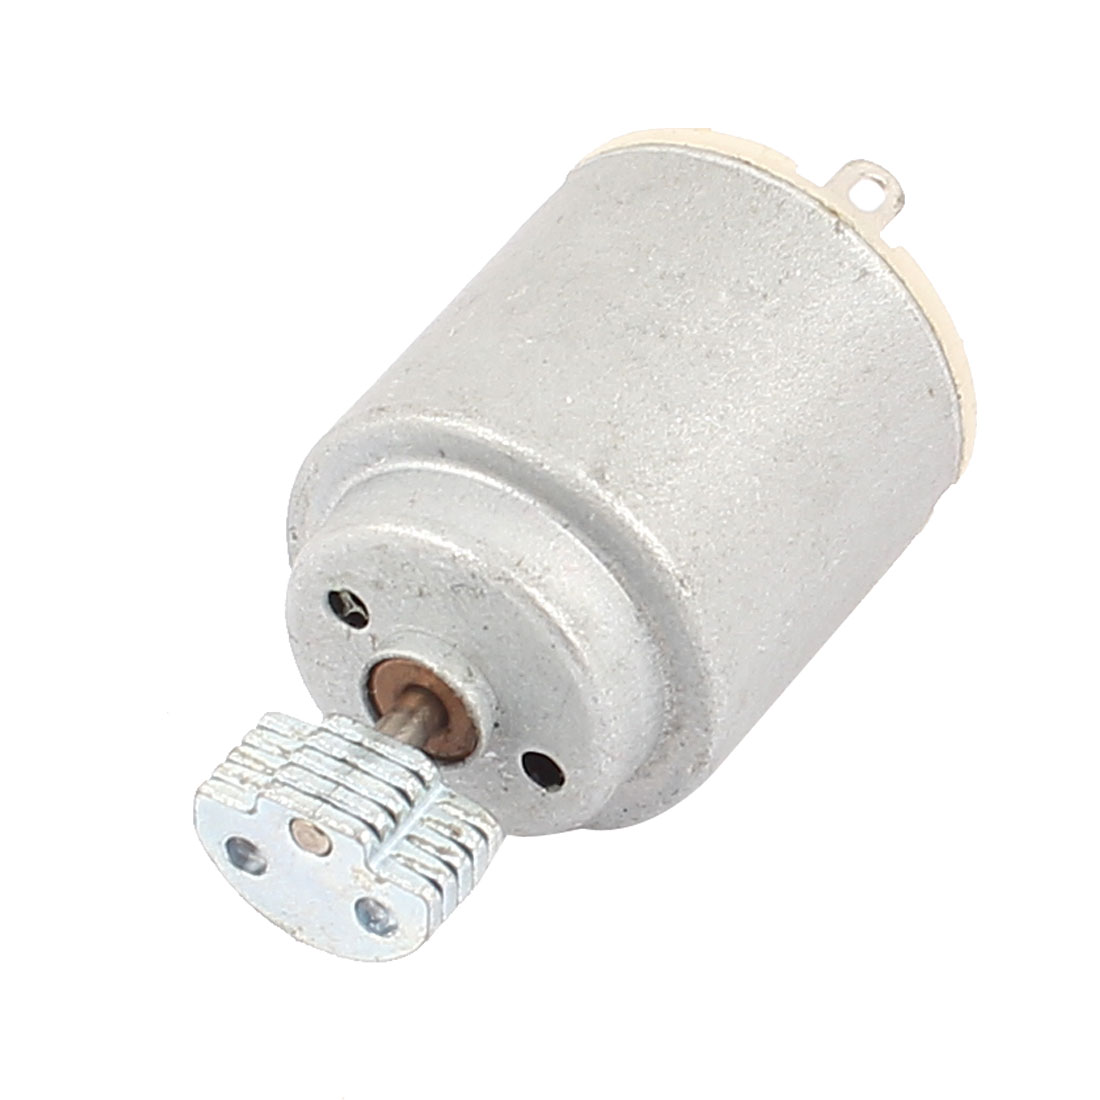 DC 1.5-6V 4300RPM High Torque Mini Micro Vibrating Vibration Motor